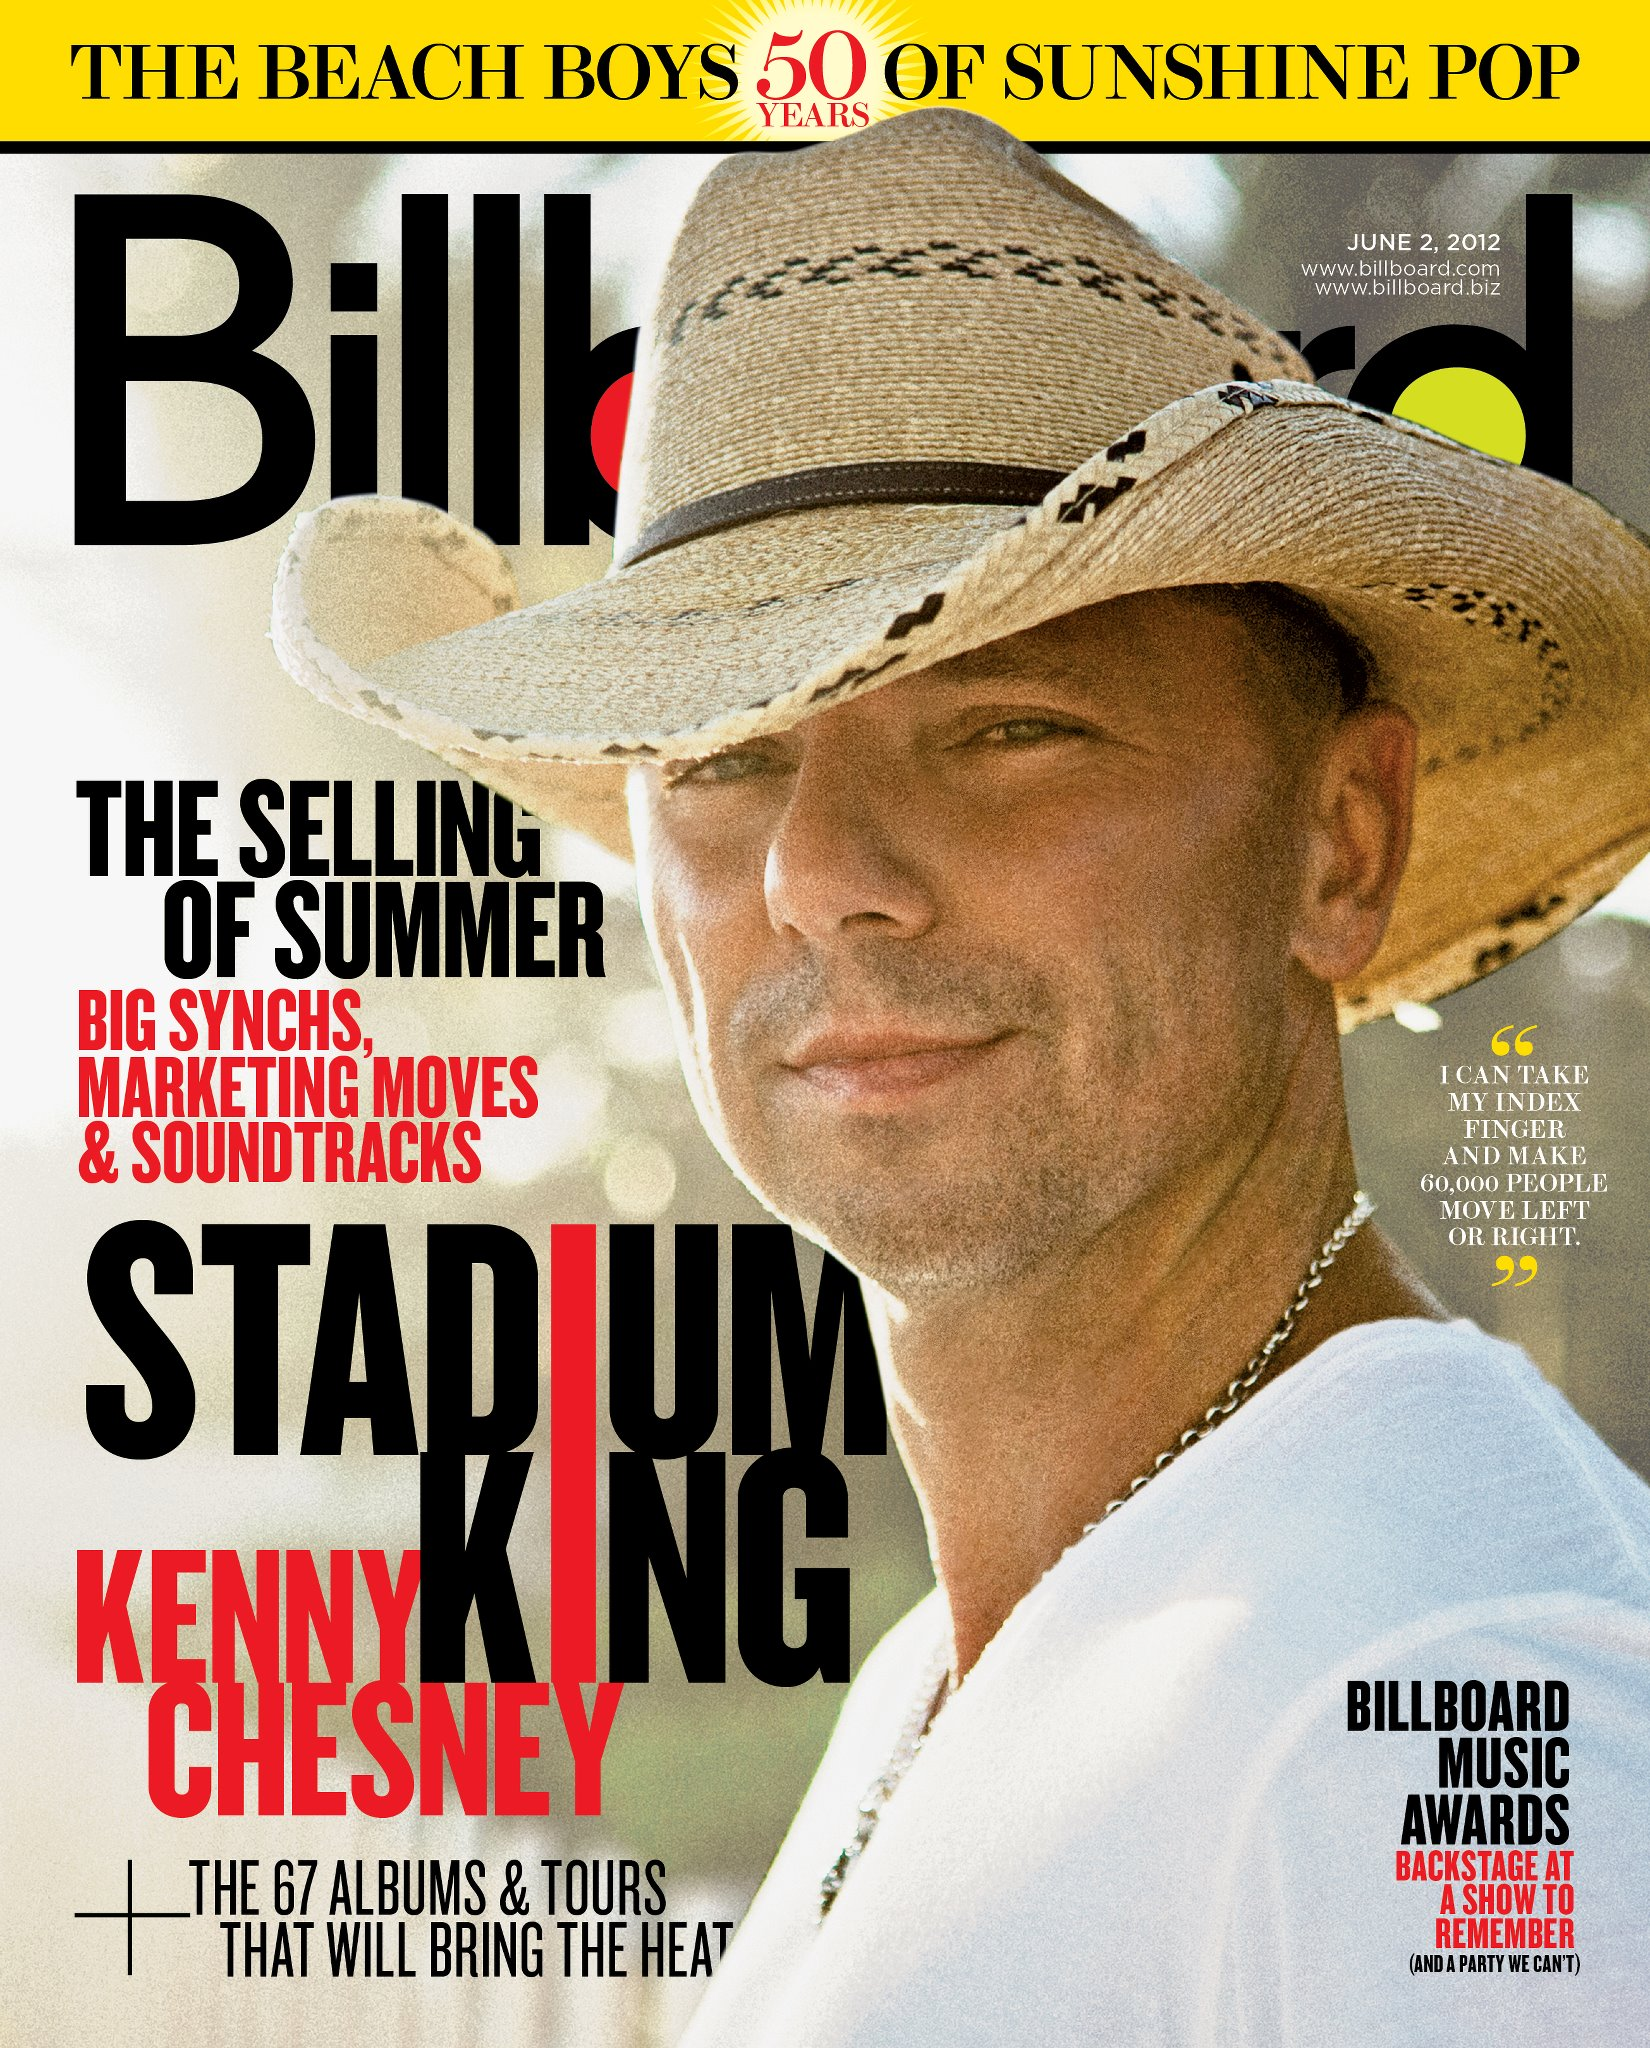 Kenny Chesney Rocks The Cover Of Billboard Magazine Country Music